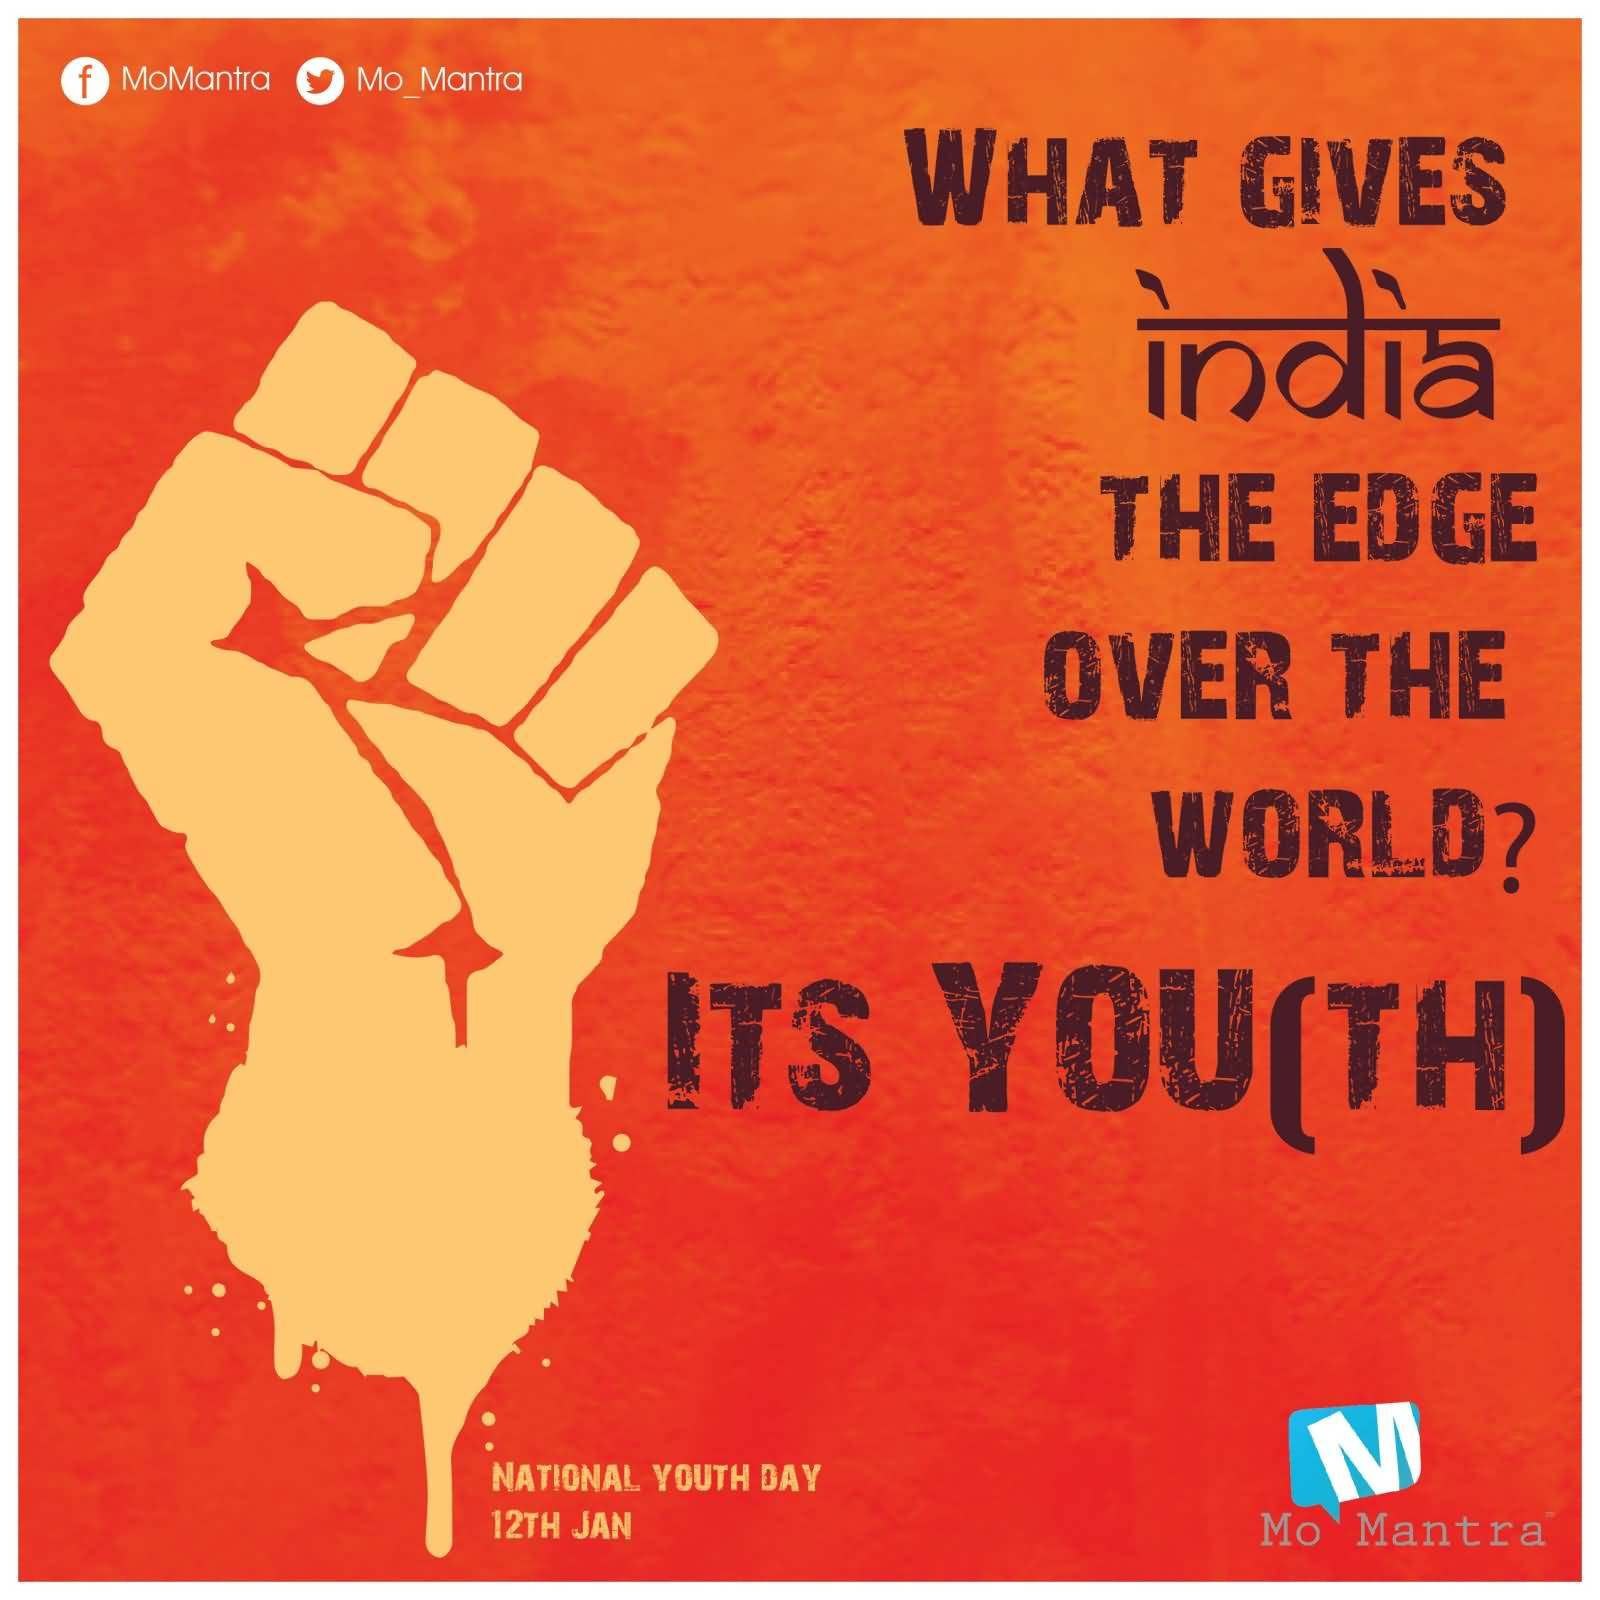 a bad day in my youth The un's international youth day is a united nations day of observance but it is not a public holiday background the un defines the worlds' youth as the age group between 15 and 24 years old, making up one-sixth of the human population.